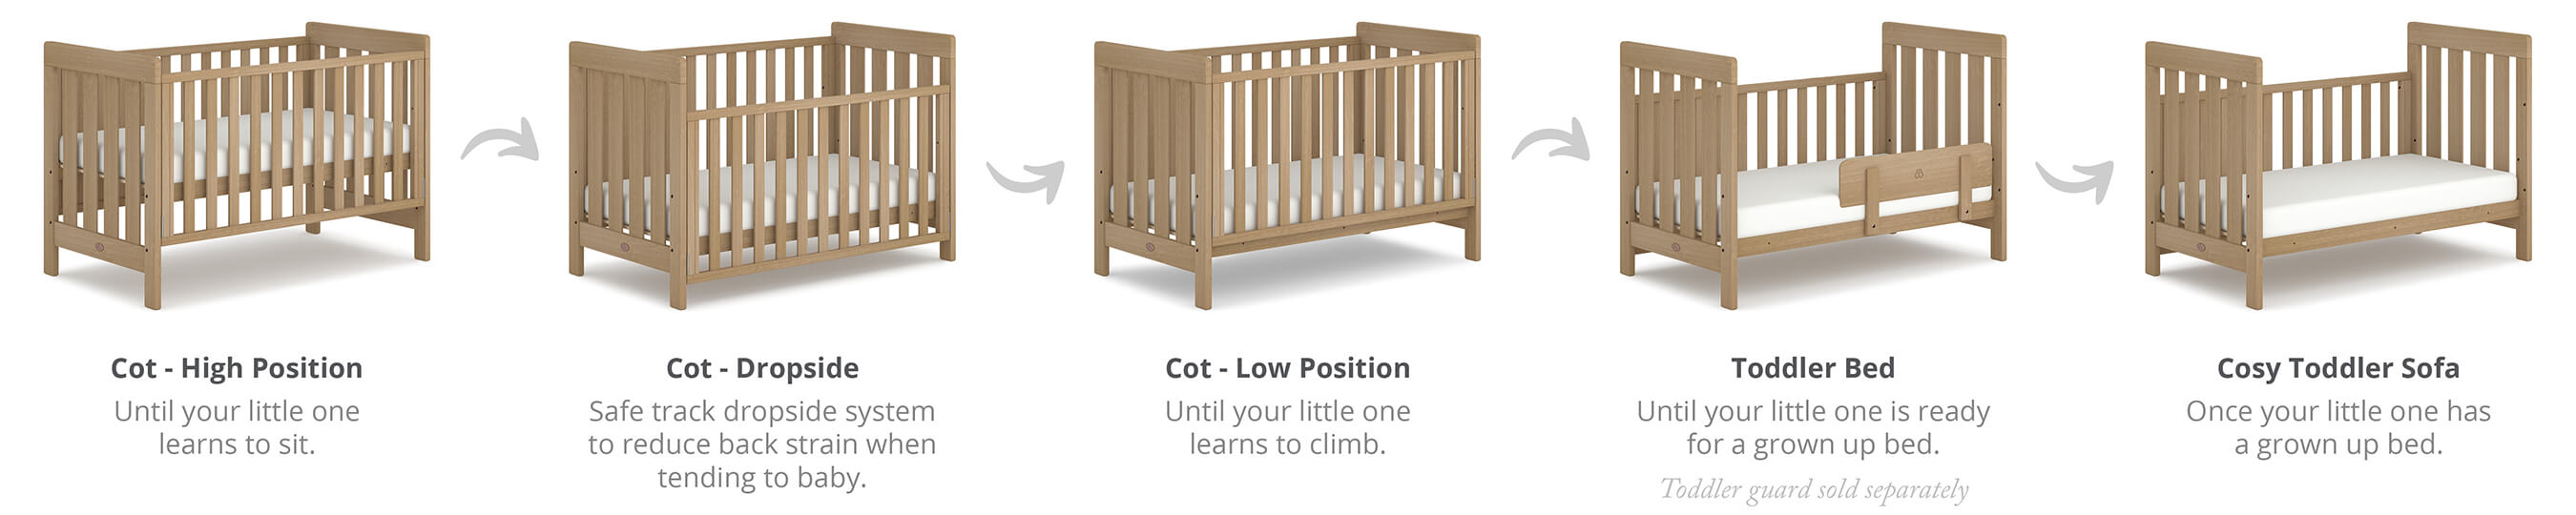 Feature_Highlights_Cot_Beds_083